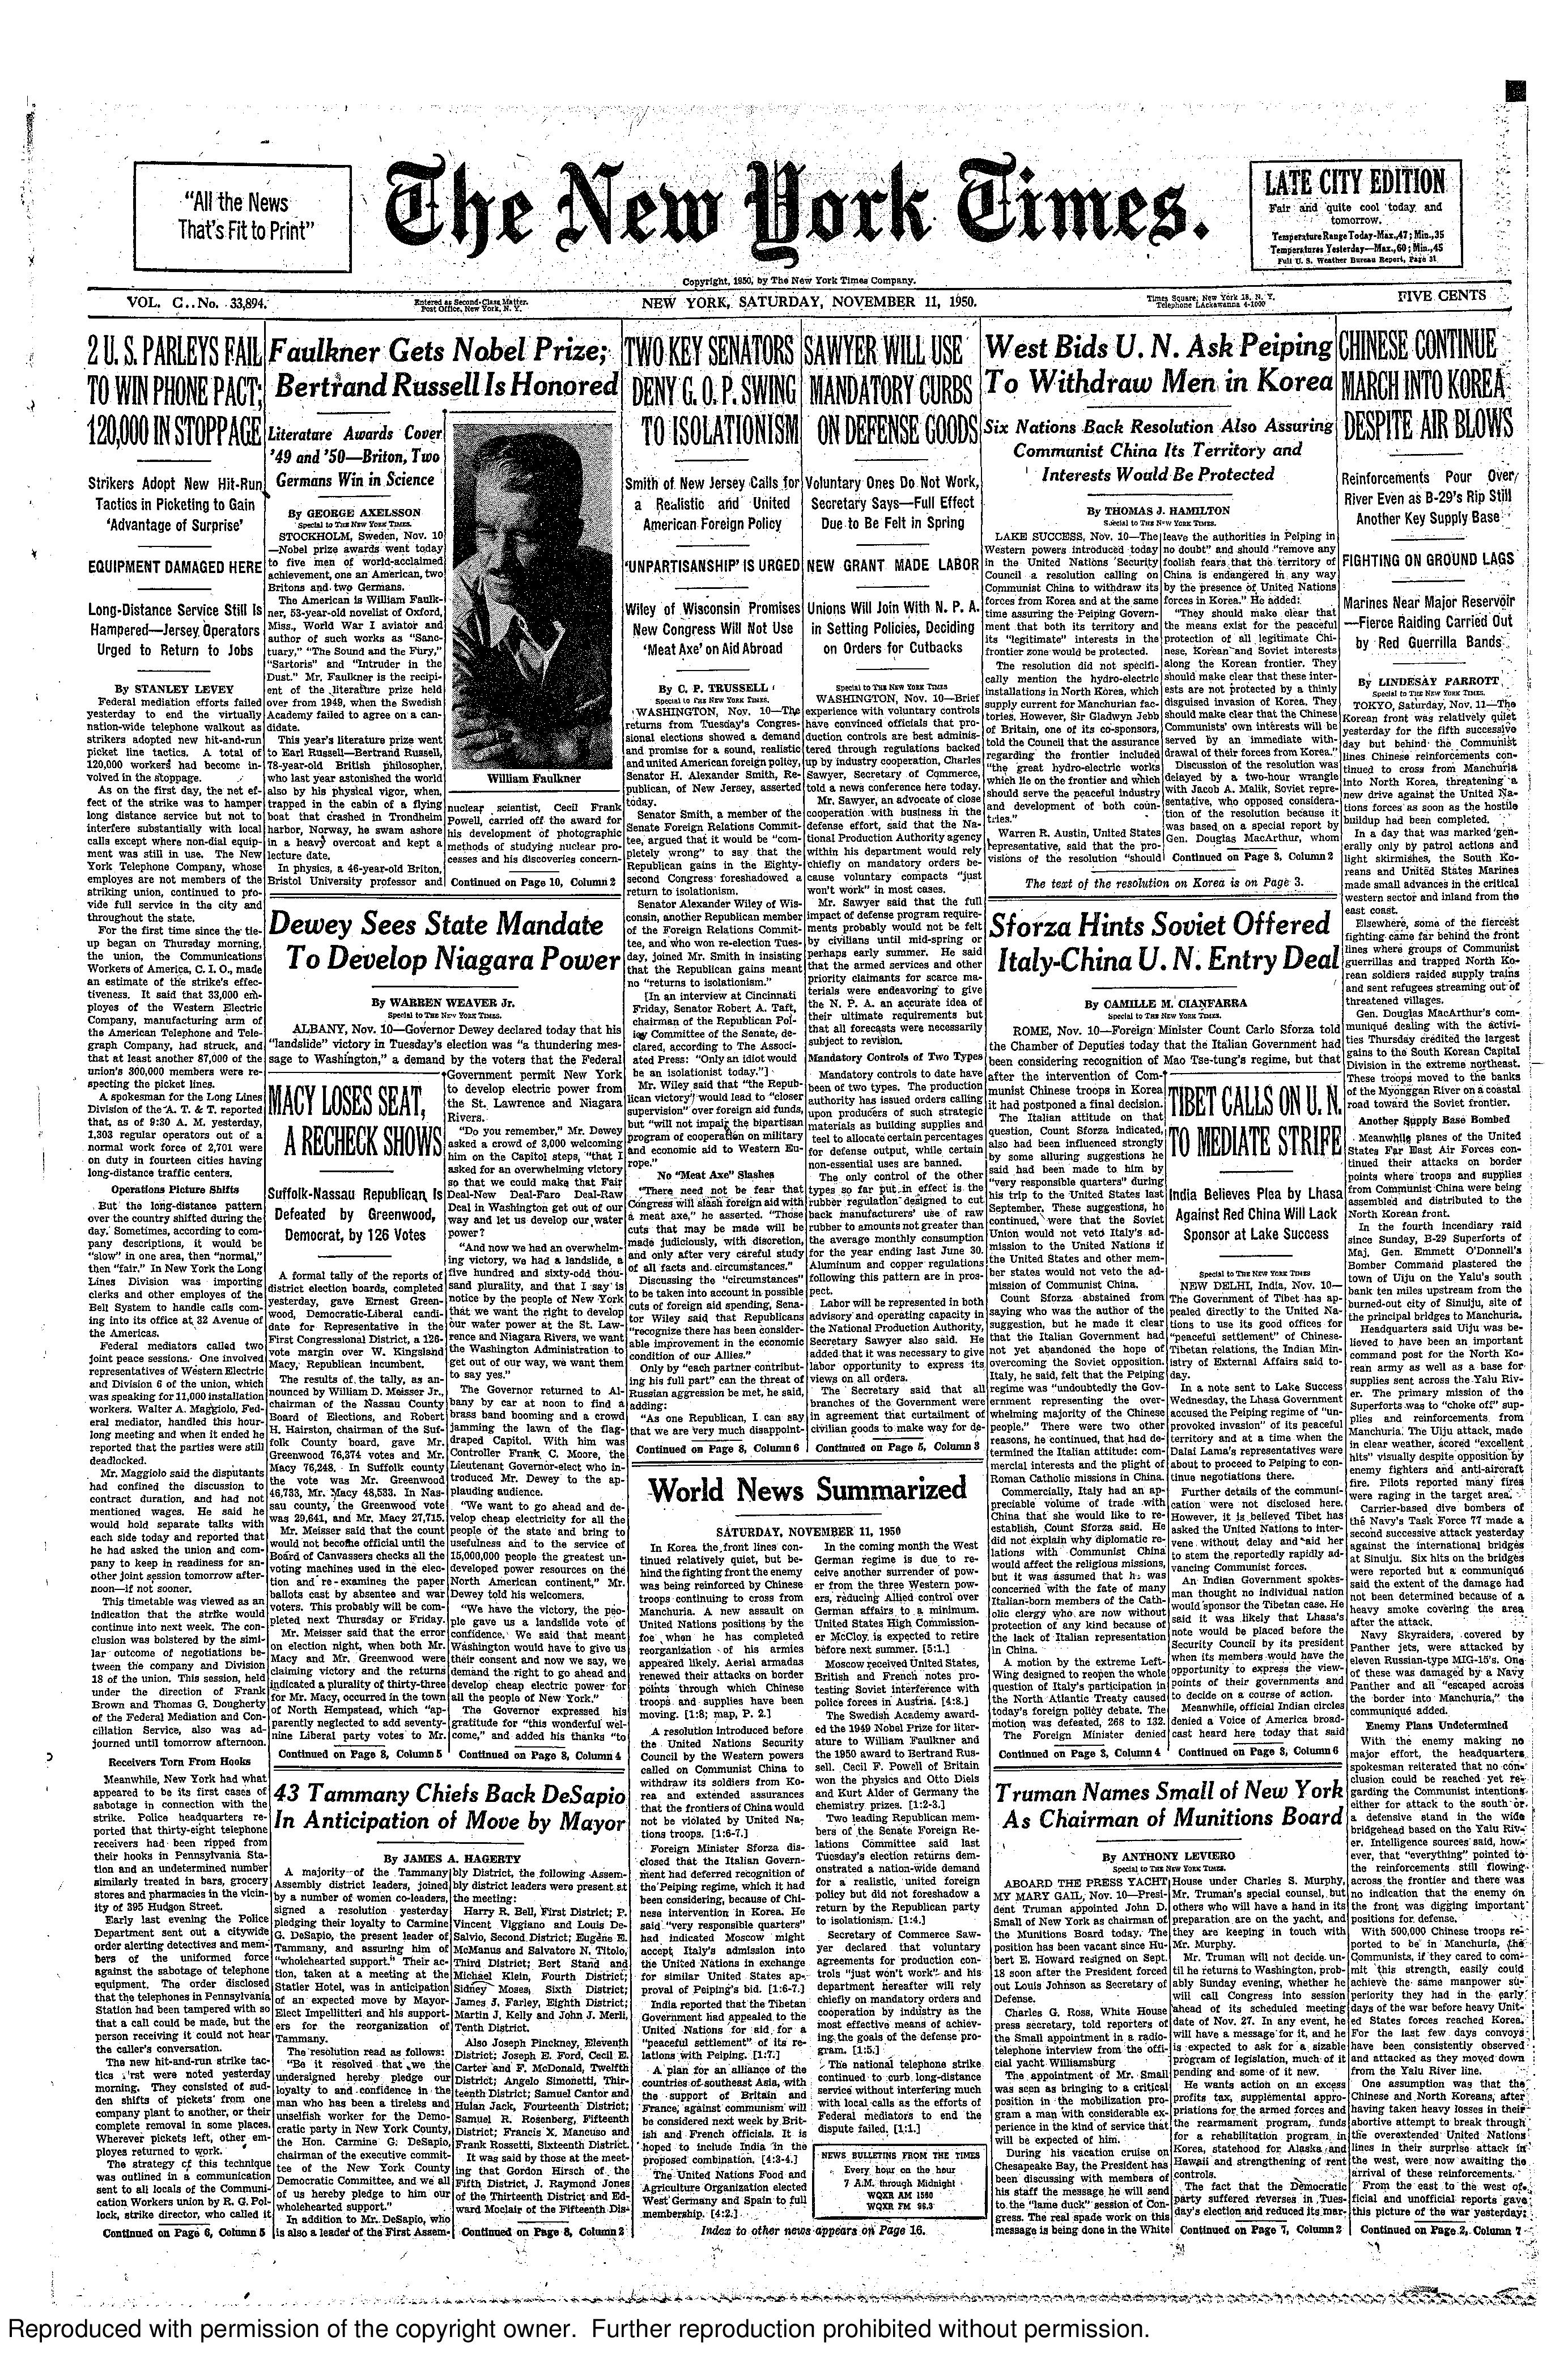 New York Time front page November 11, 1950